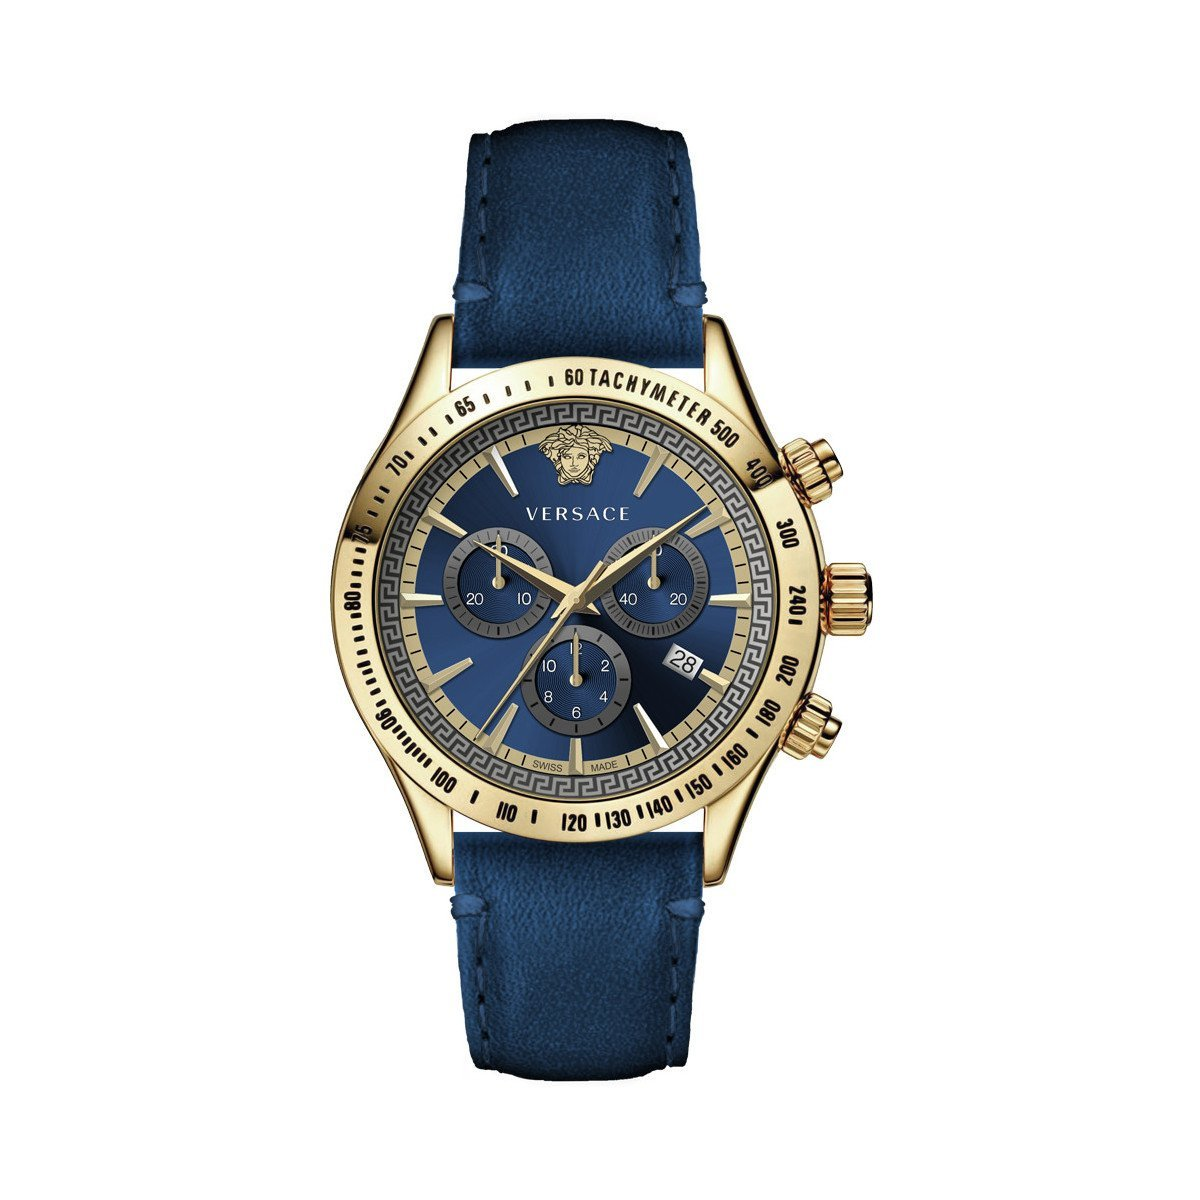 Versace Classic Chronograph Blue - Watches & Crystals